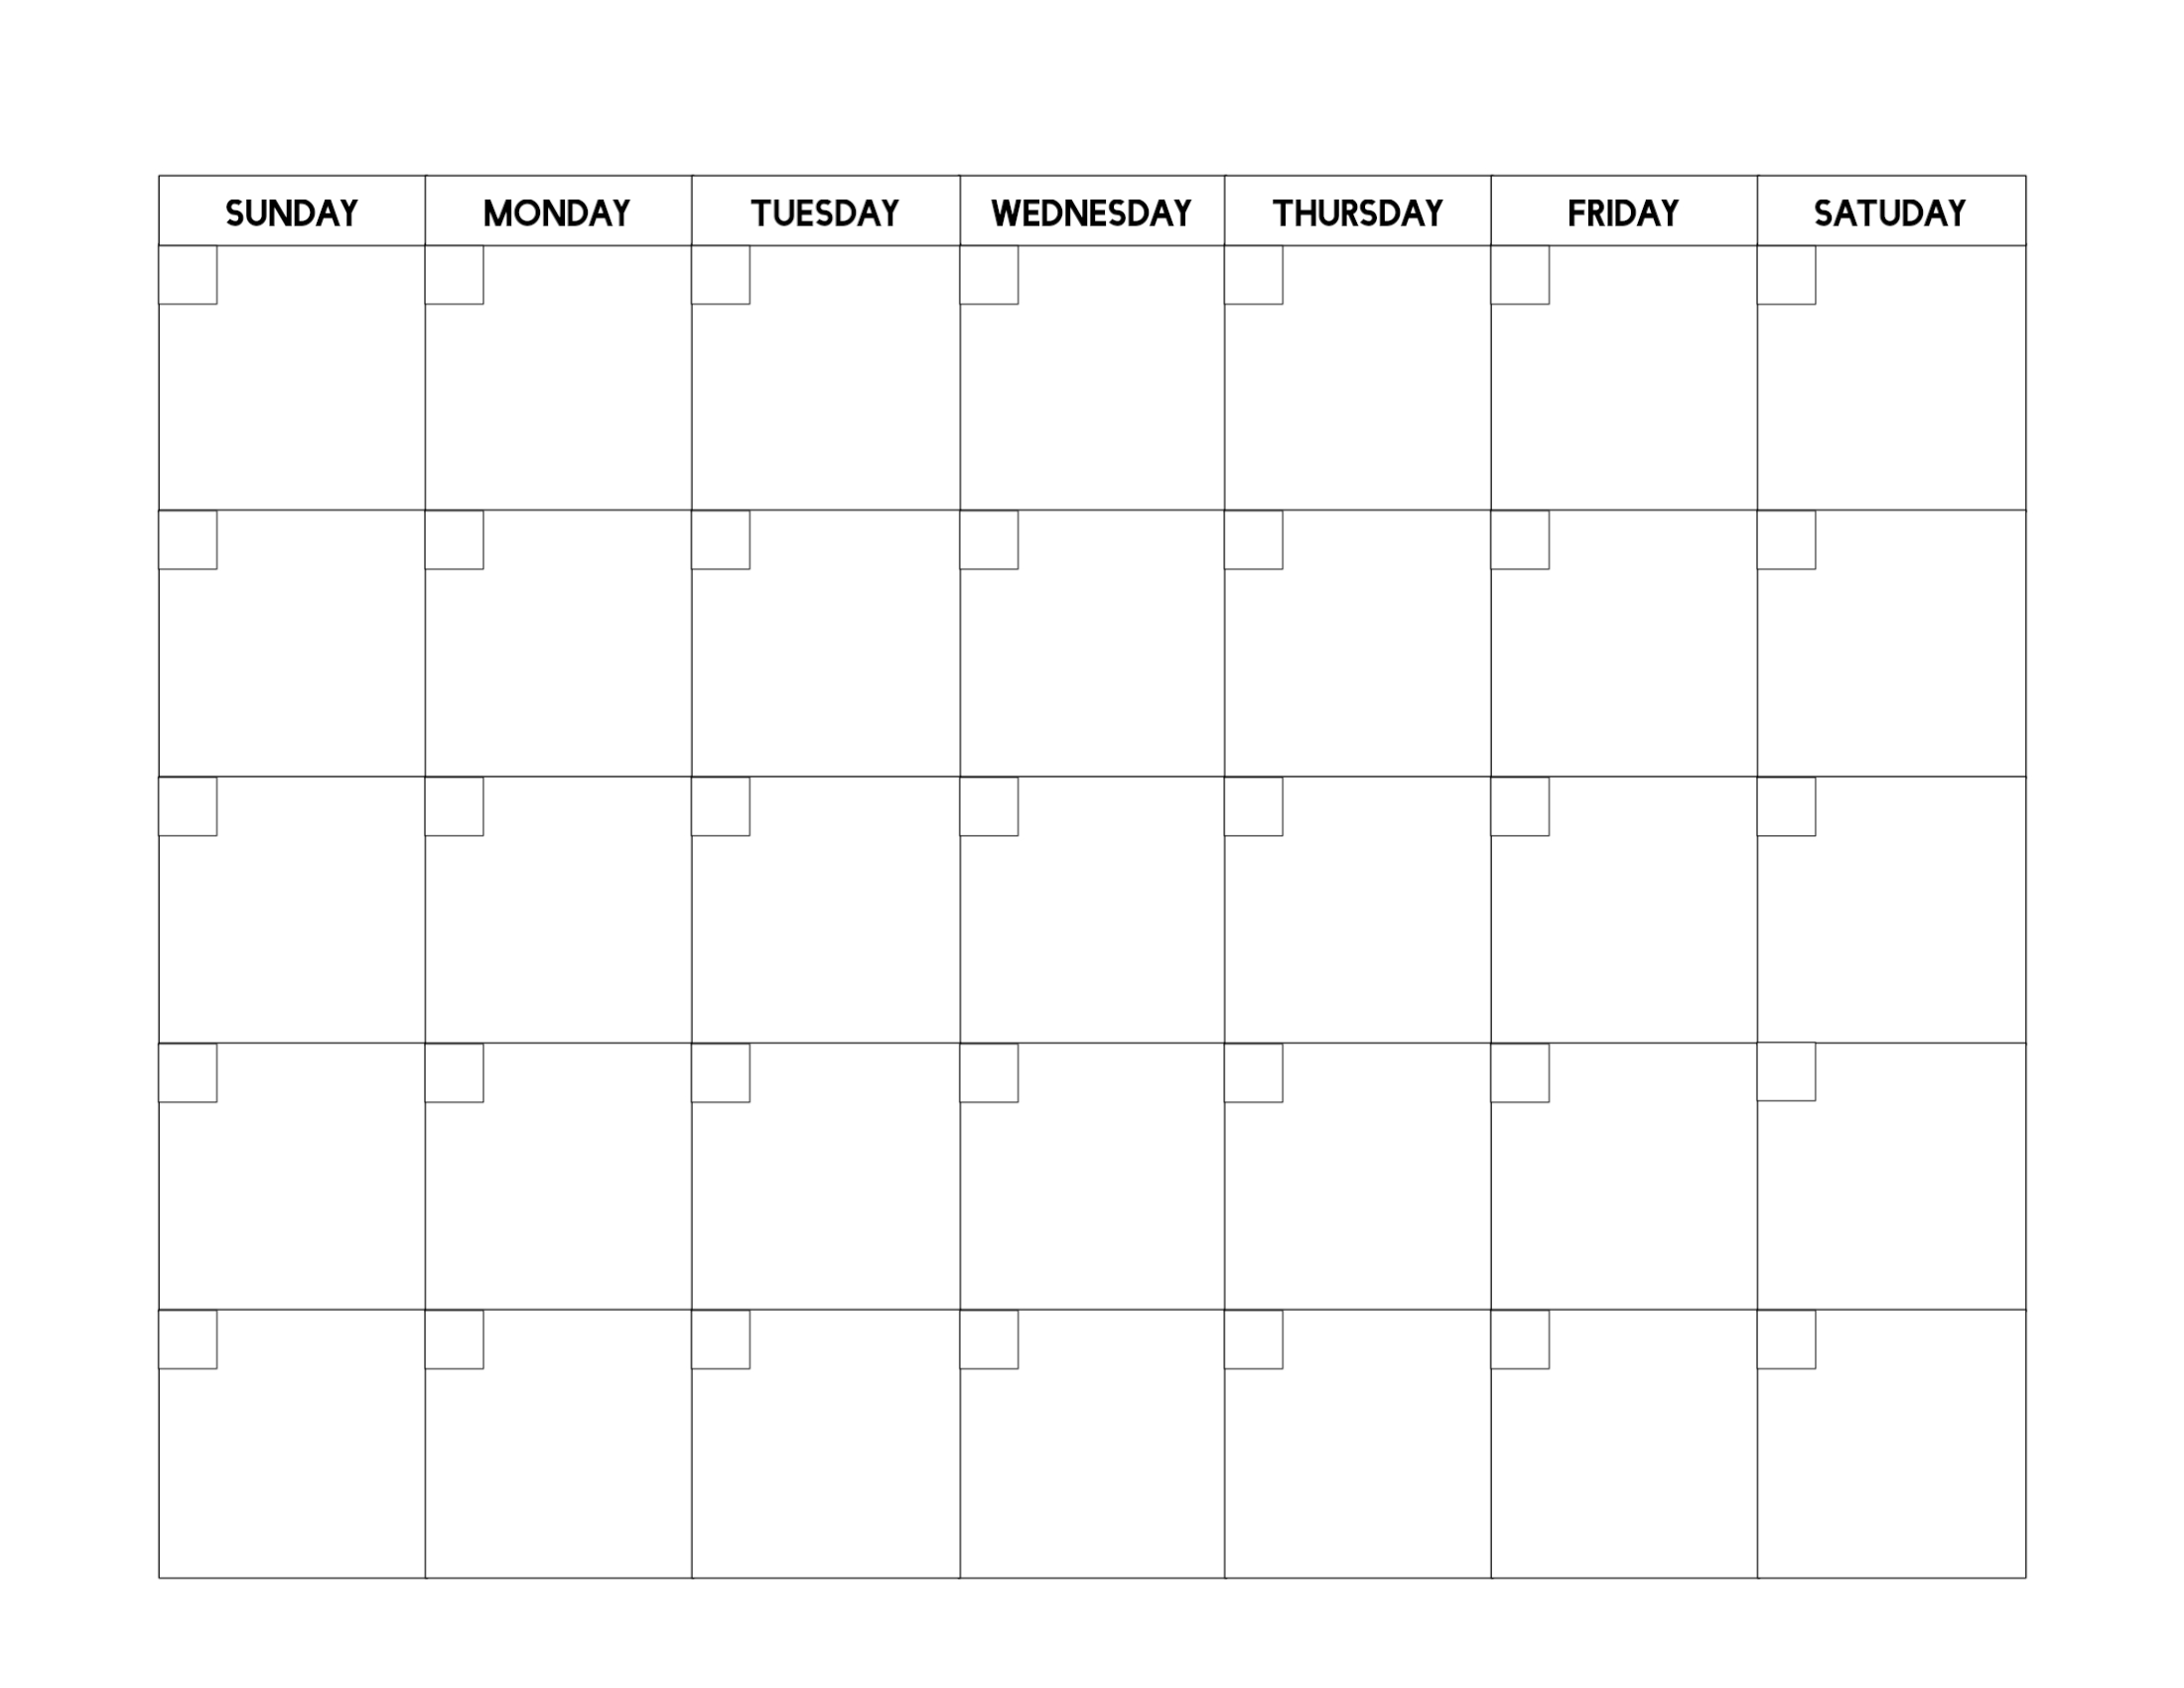 Free Printable Fill In Calendar - Wpa.wpart.co-Calendar Fill In Templates